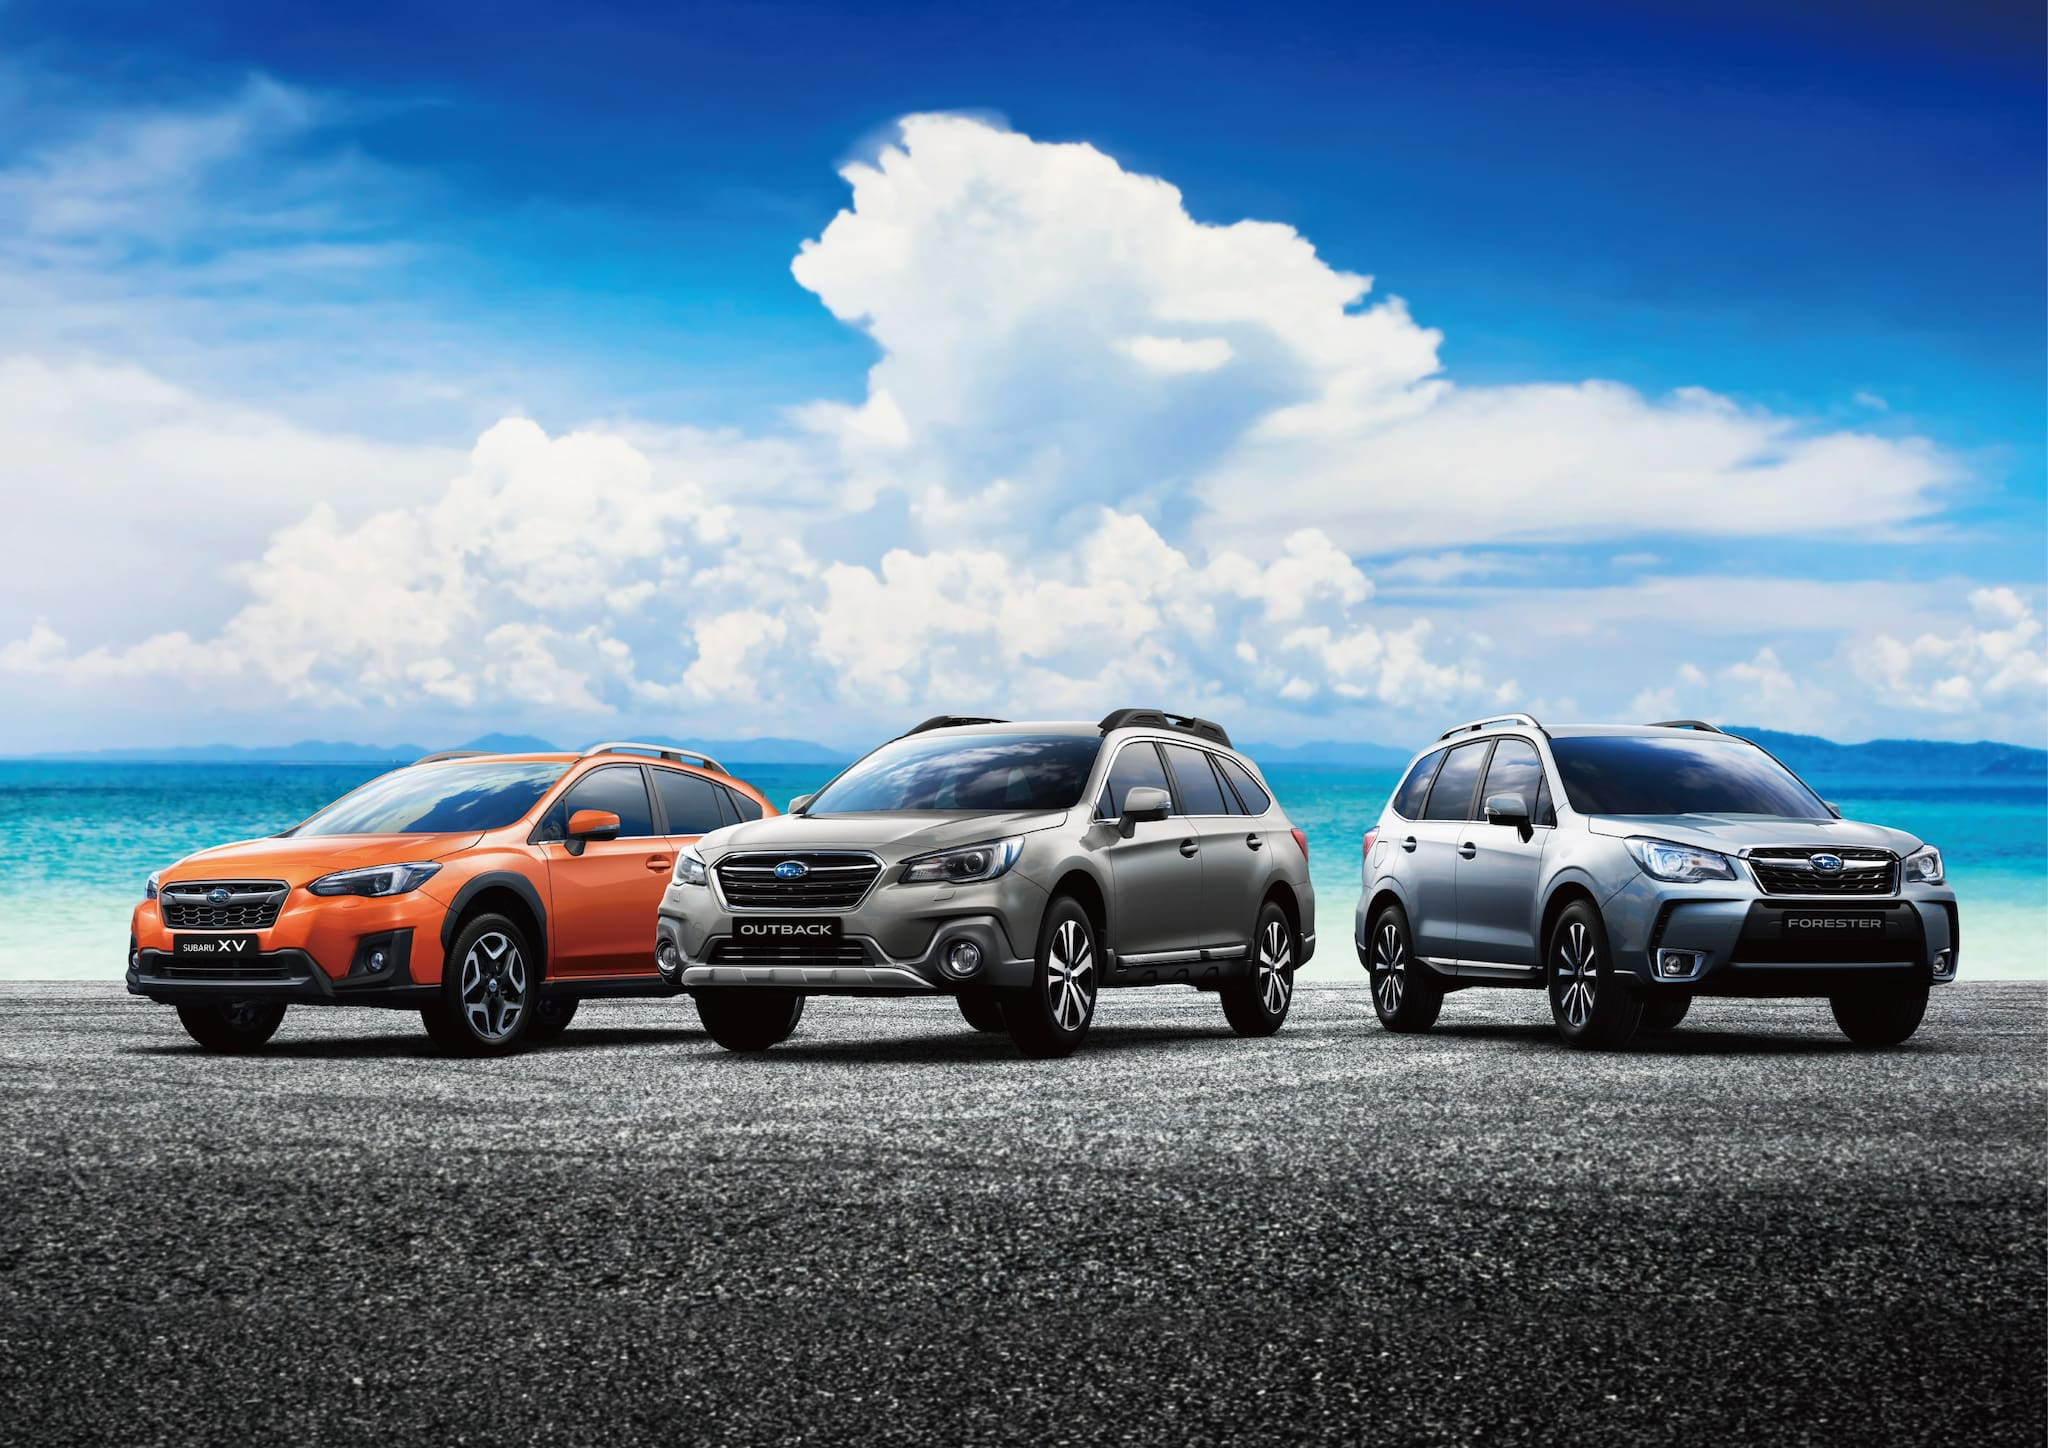 Own a Subaru at Lower Prices Versus Pre-TRAIN Law Prices